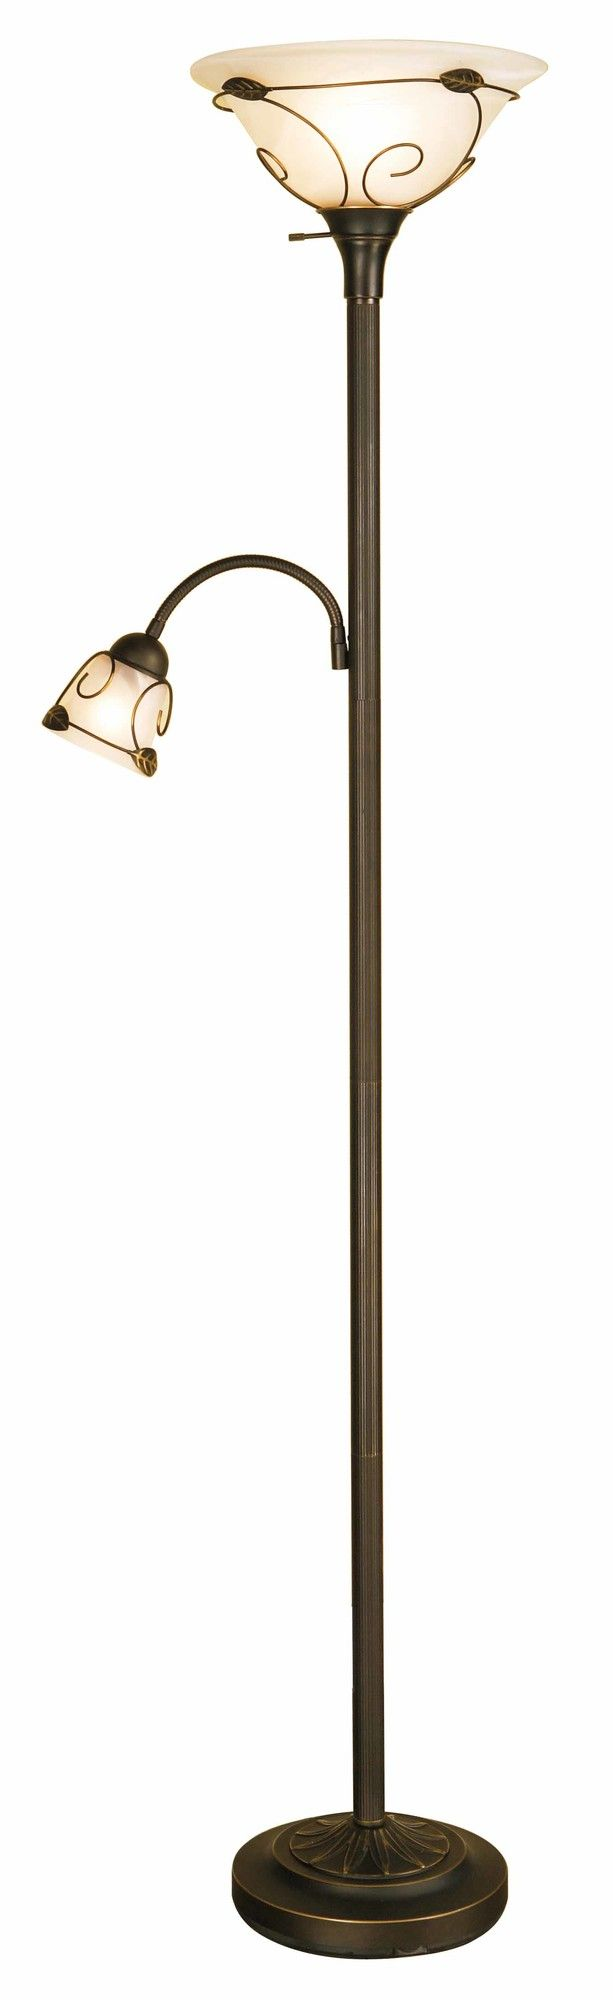 Torchiere Floor Lamp With Side Reading